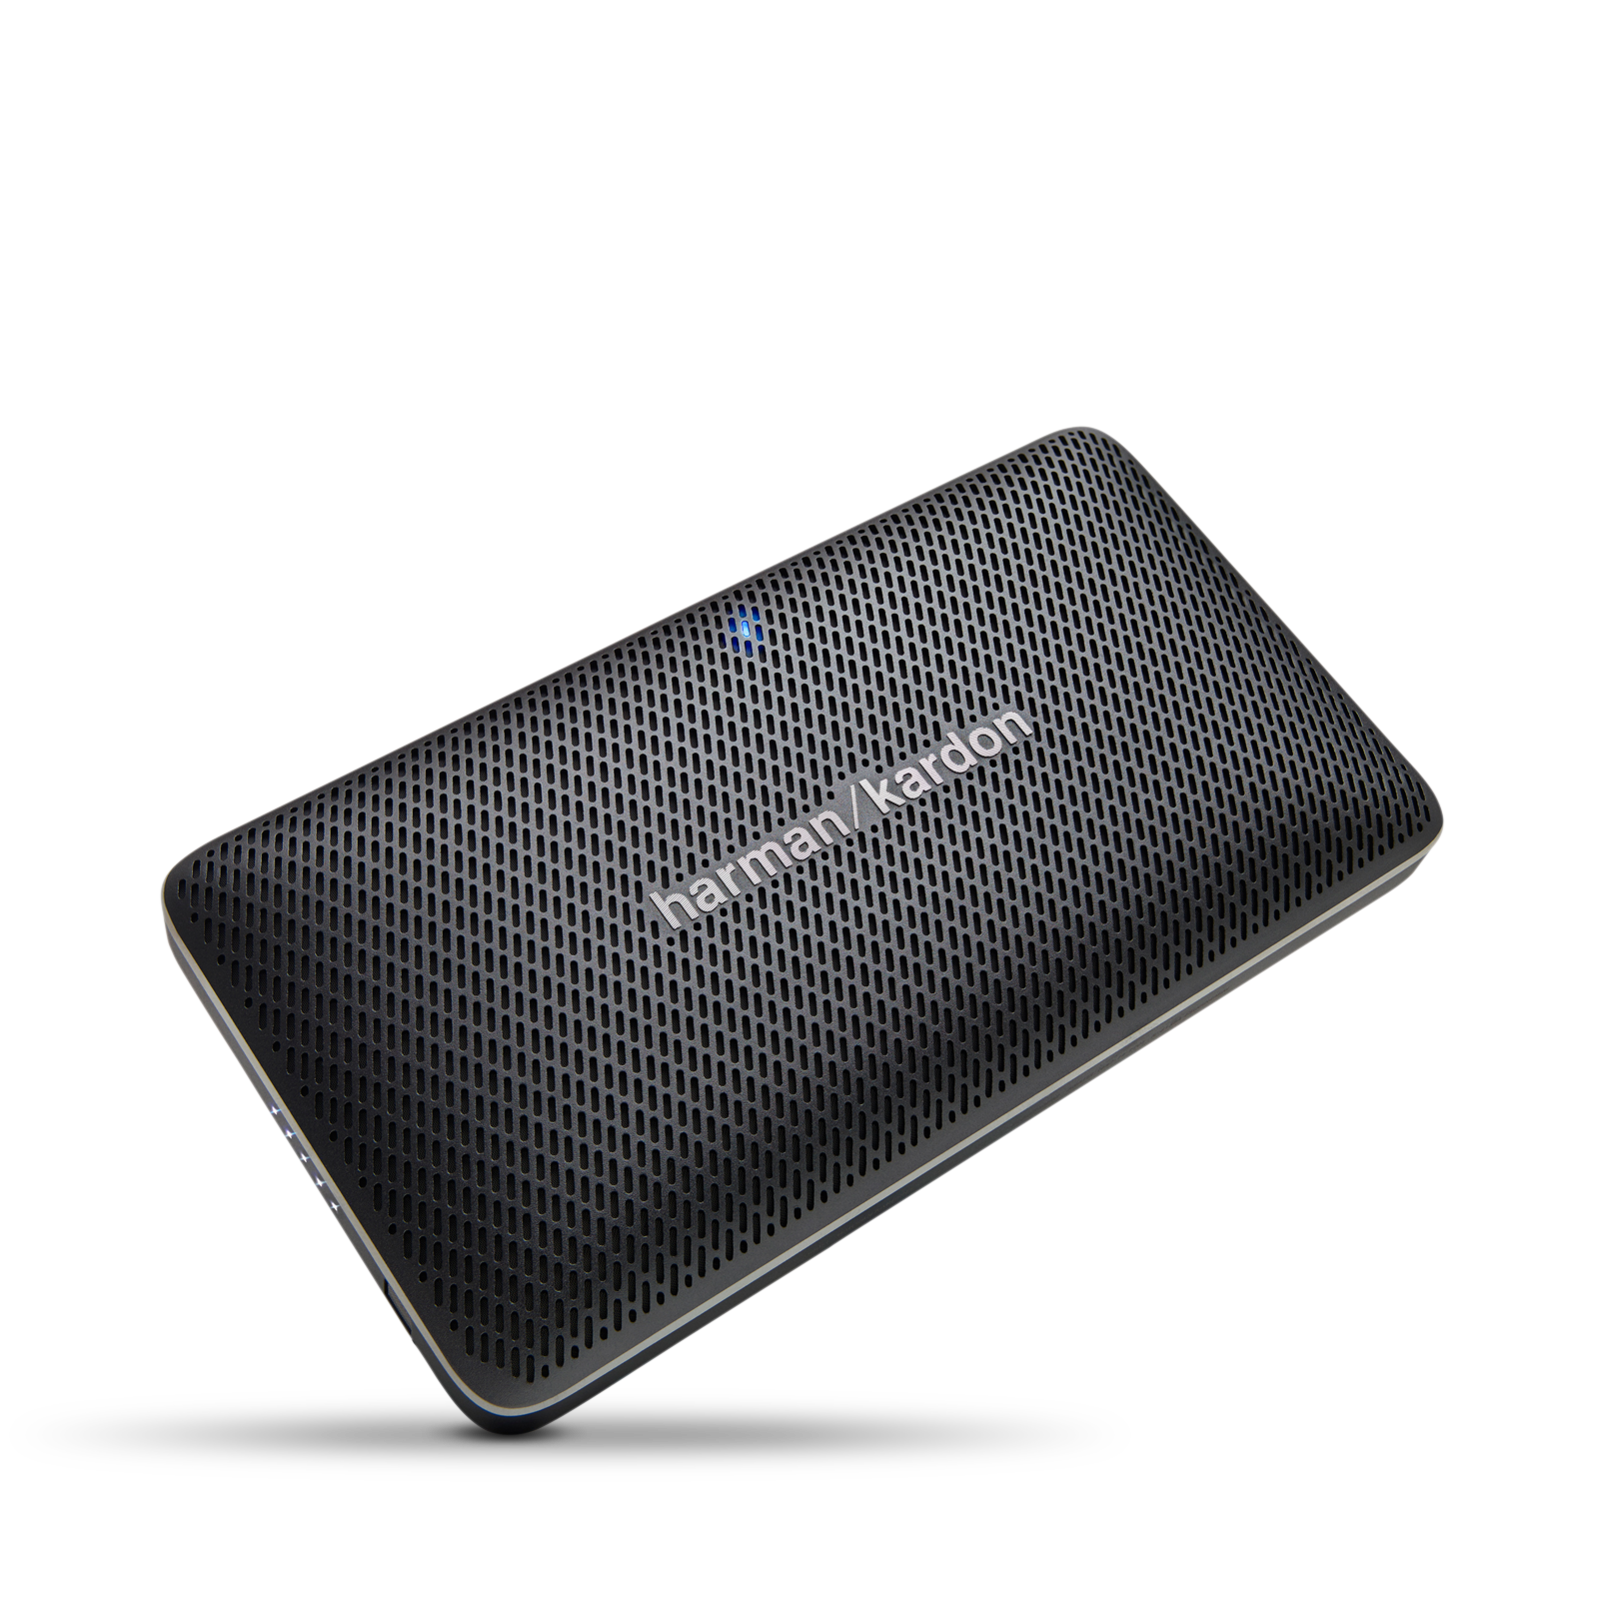 Esquire Mini - Grey - Wireless, portable speaker and conferencing system - Hero